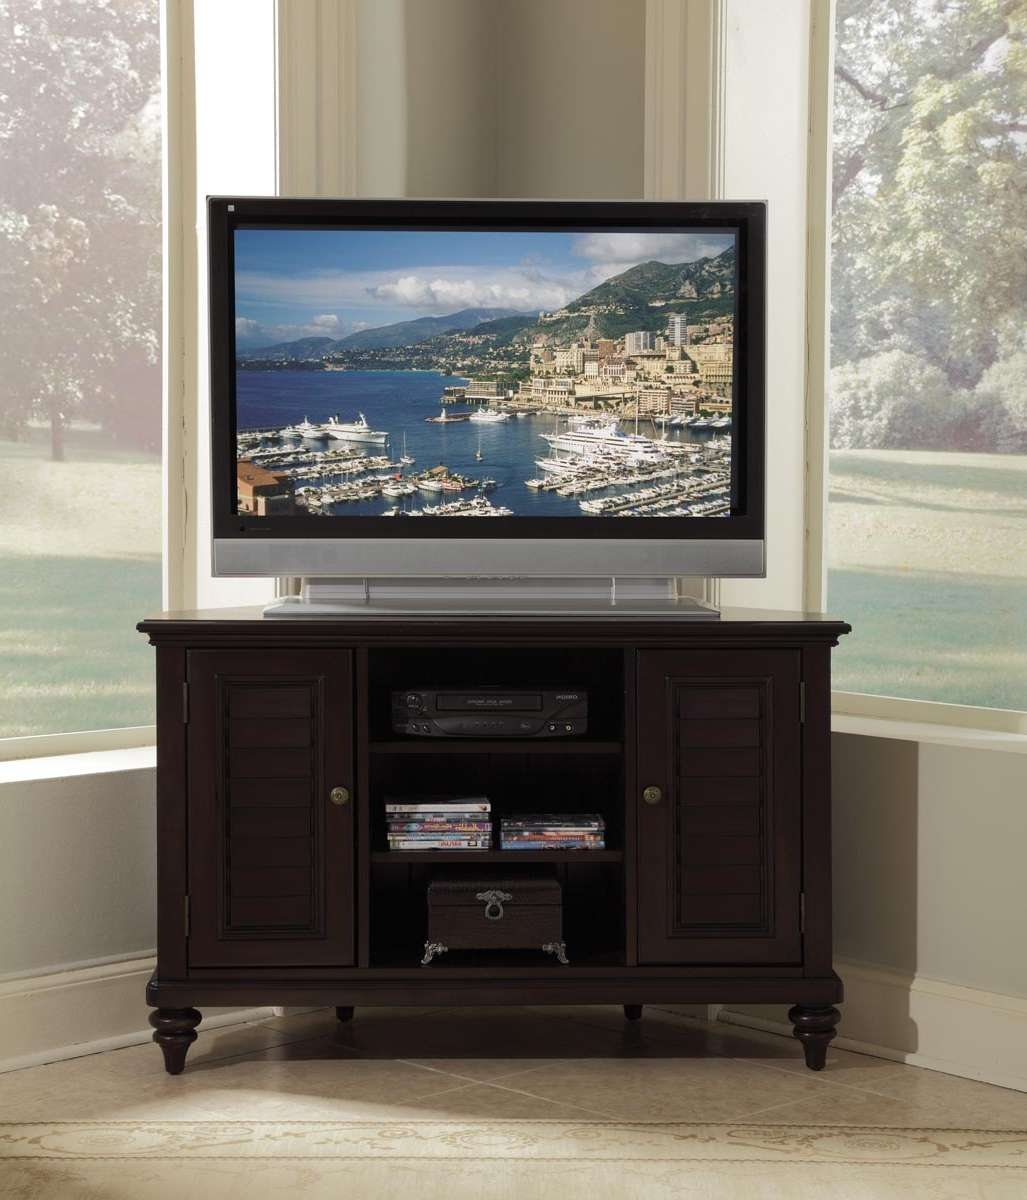 Tv Stand With Rounded Corners – Round Designs Regarding Tv Stands With Rounded Corners (View 5 of 15)